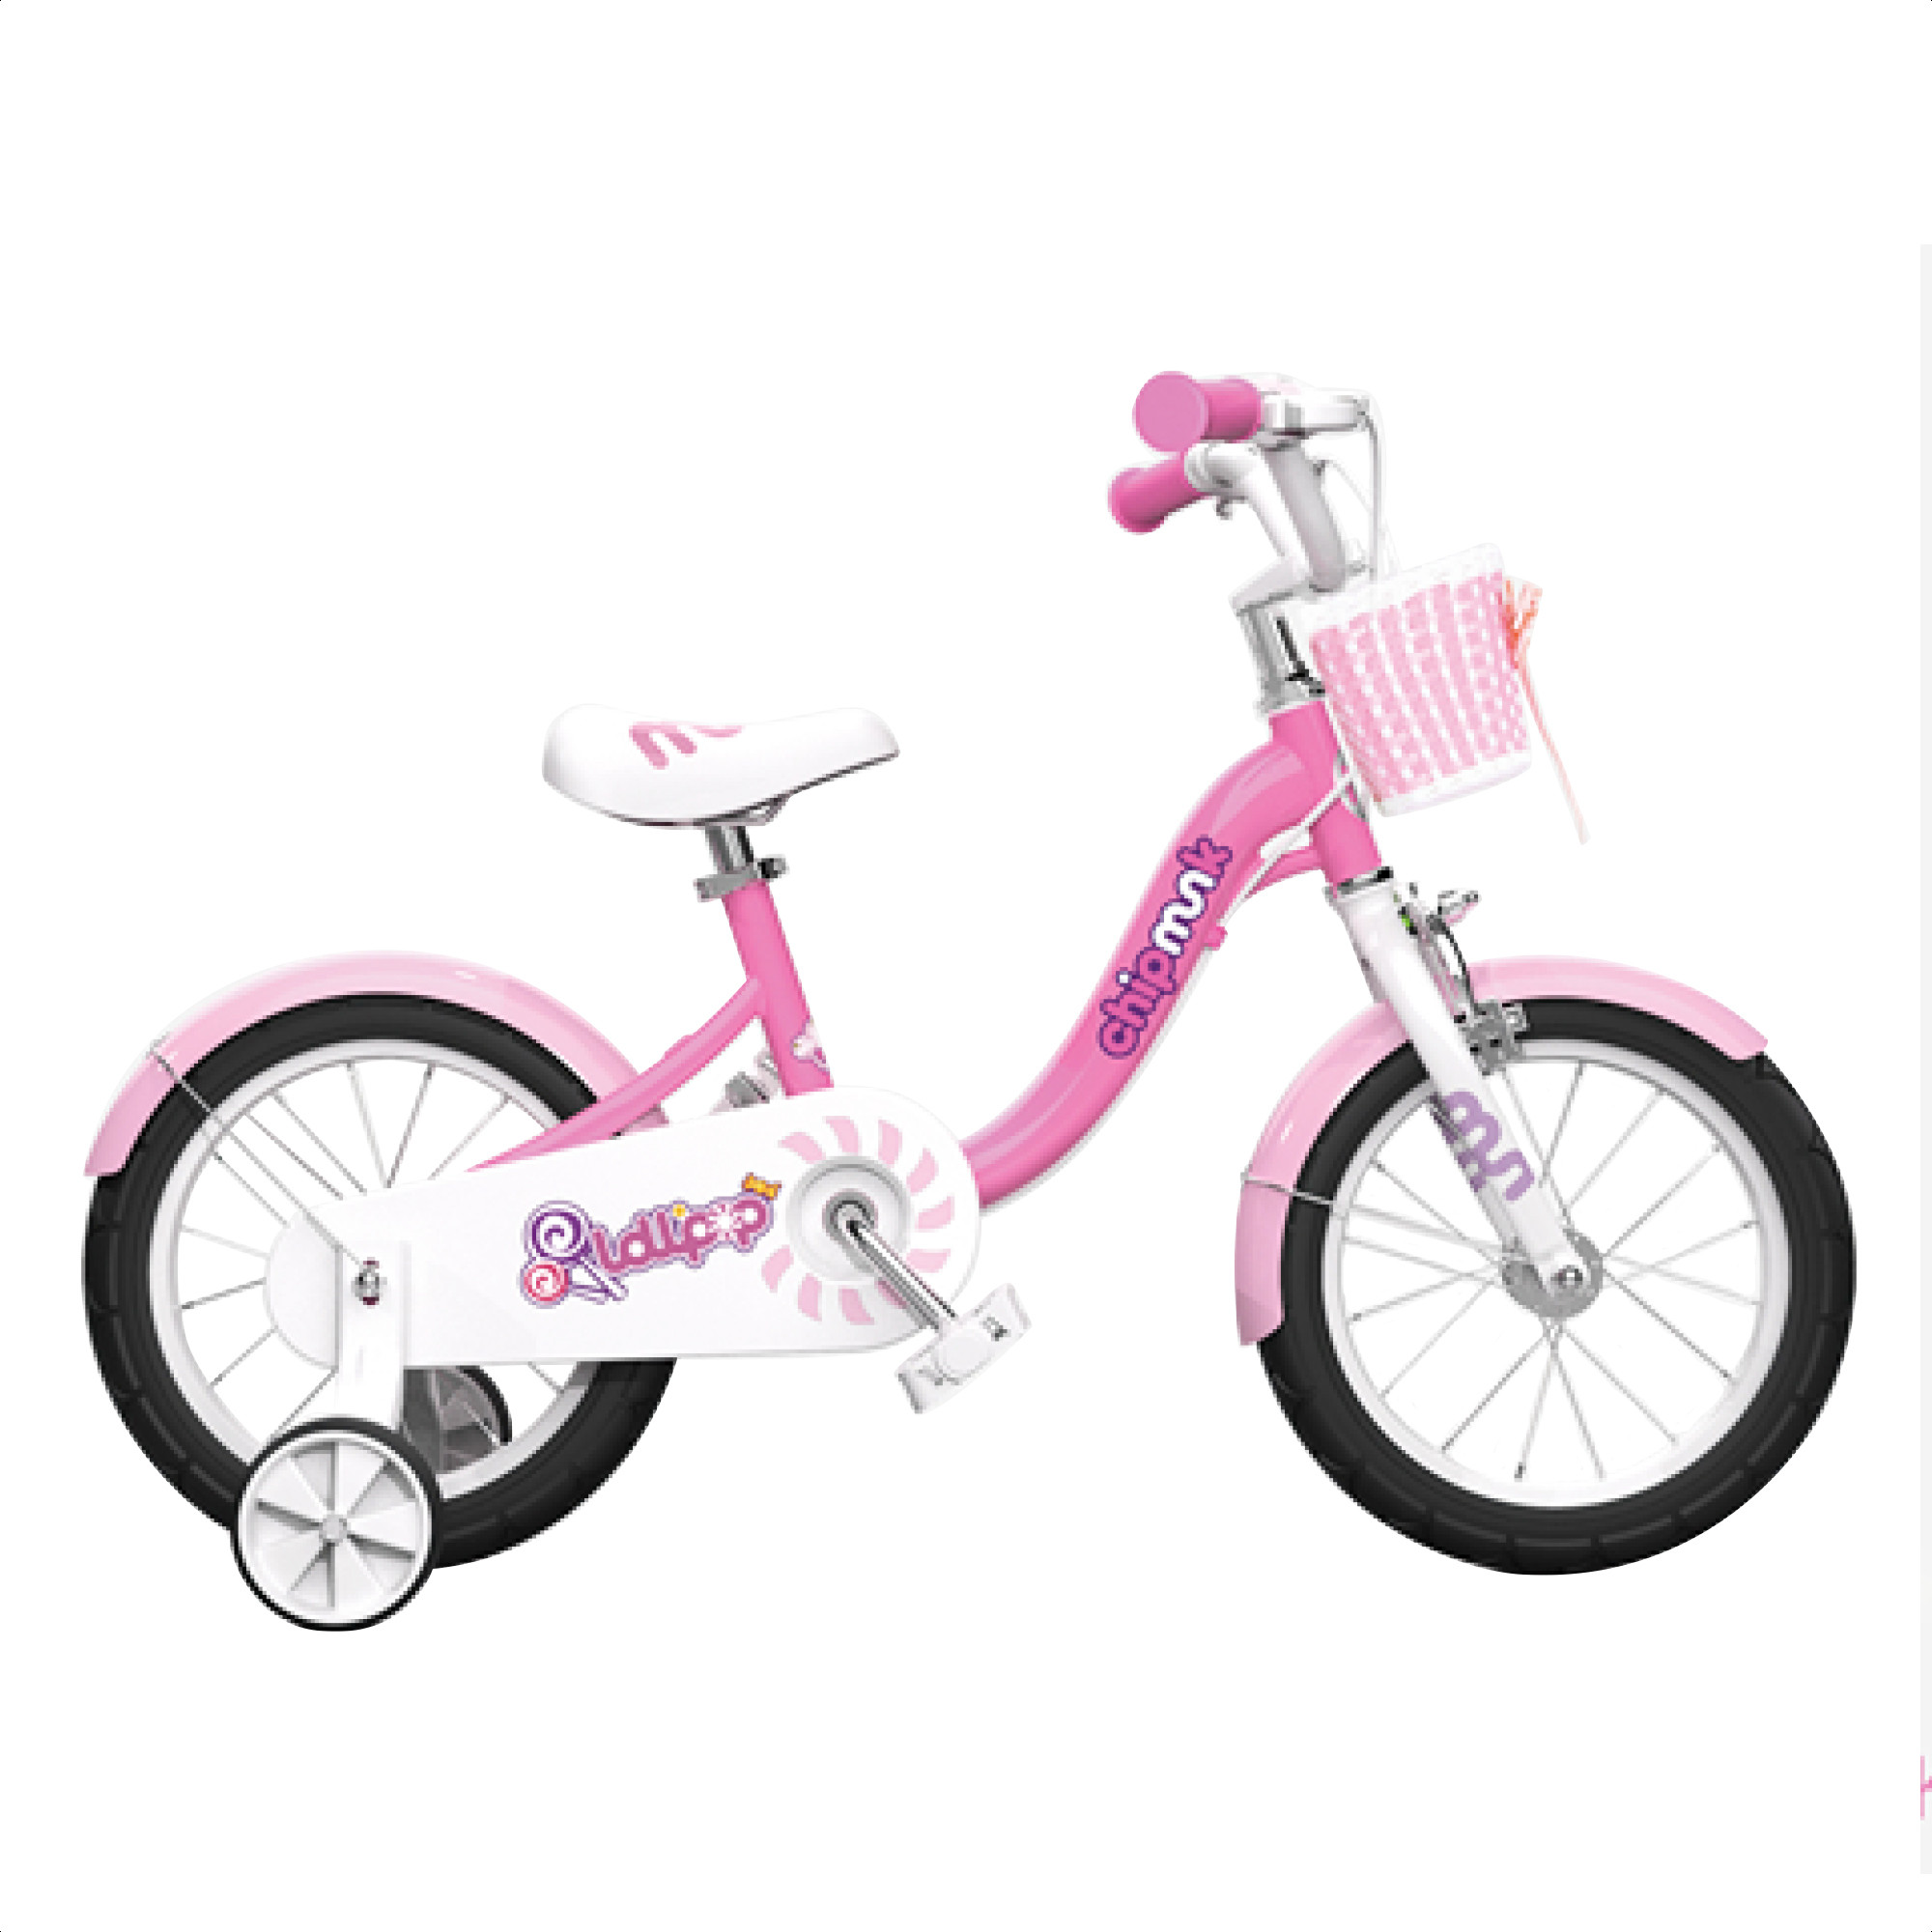 Bicicleta Infantil Royal Baby Chipmunk Mm Rodado 16